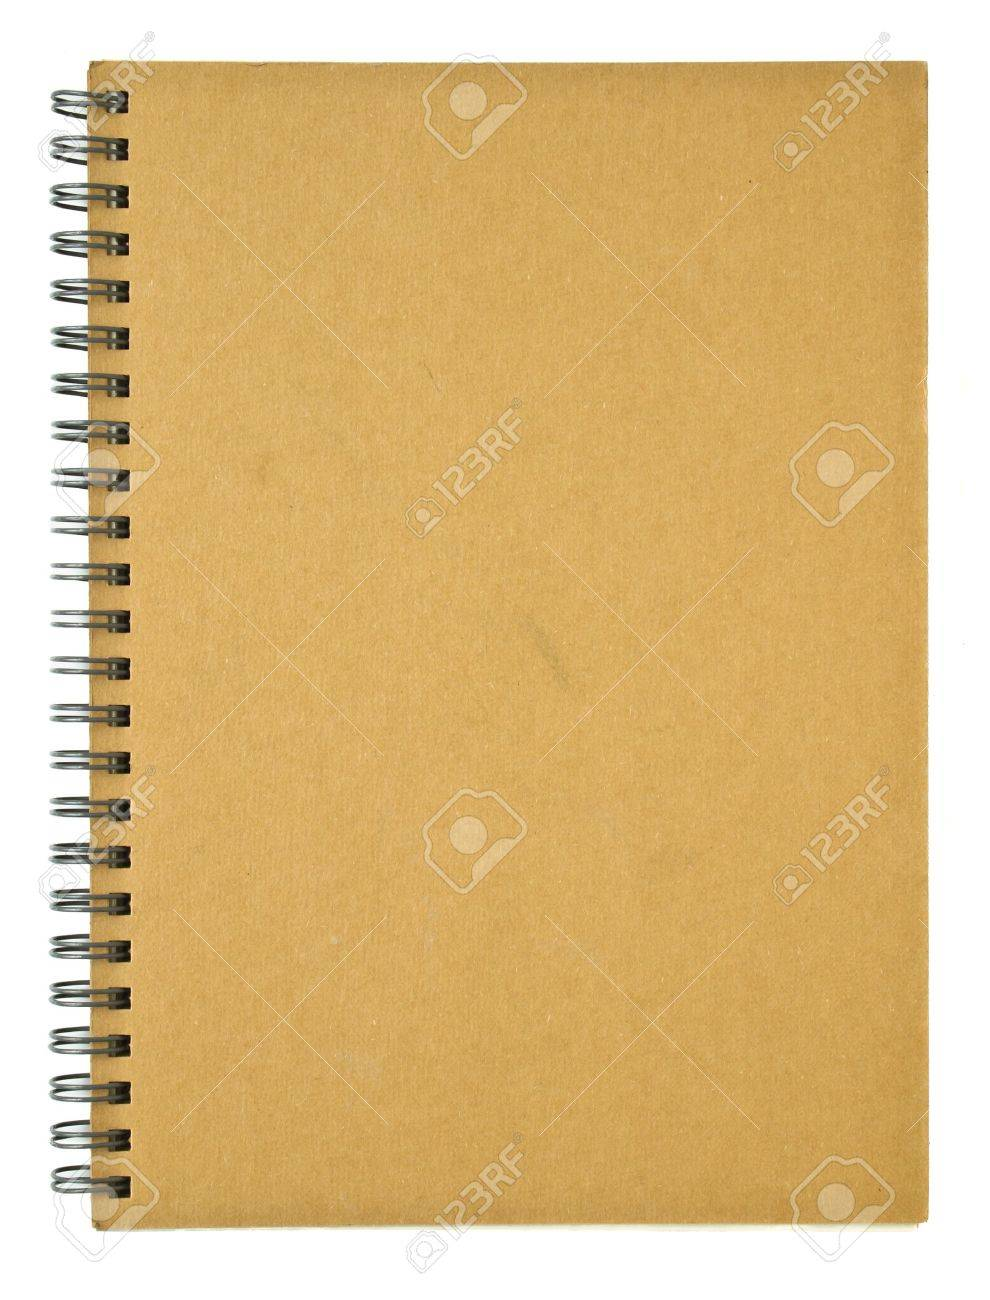 Clear cover of recycle spiral notebook Stock Photo - 8458316